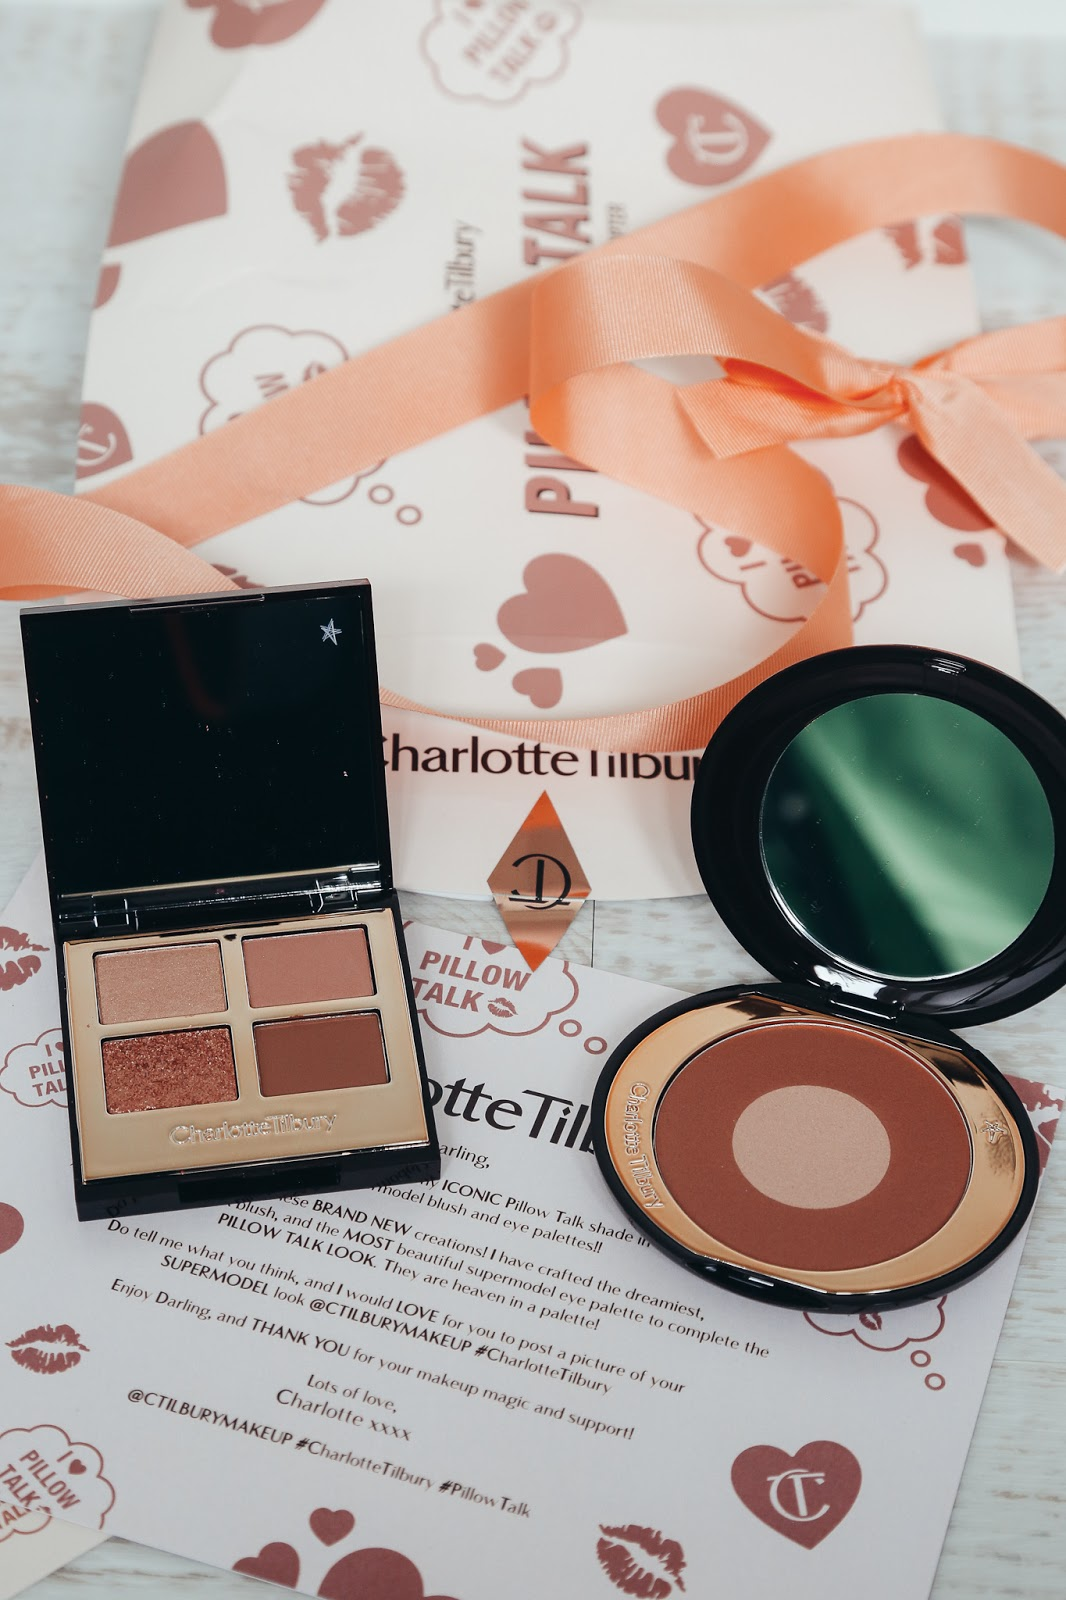 Charlotte Tilbury Pillow Talk Blush & Luxury Eye Palette Review